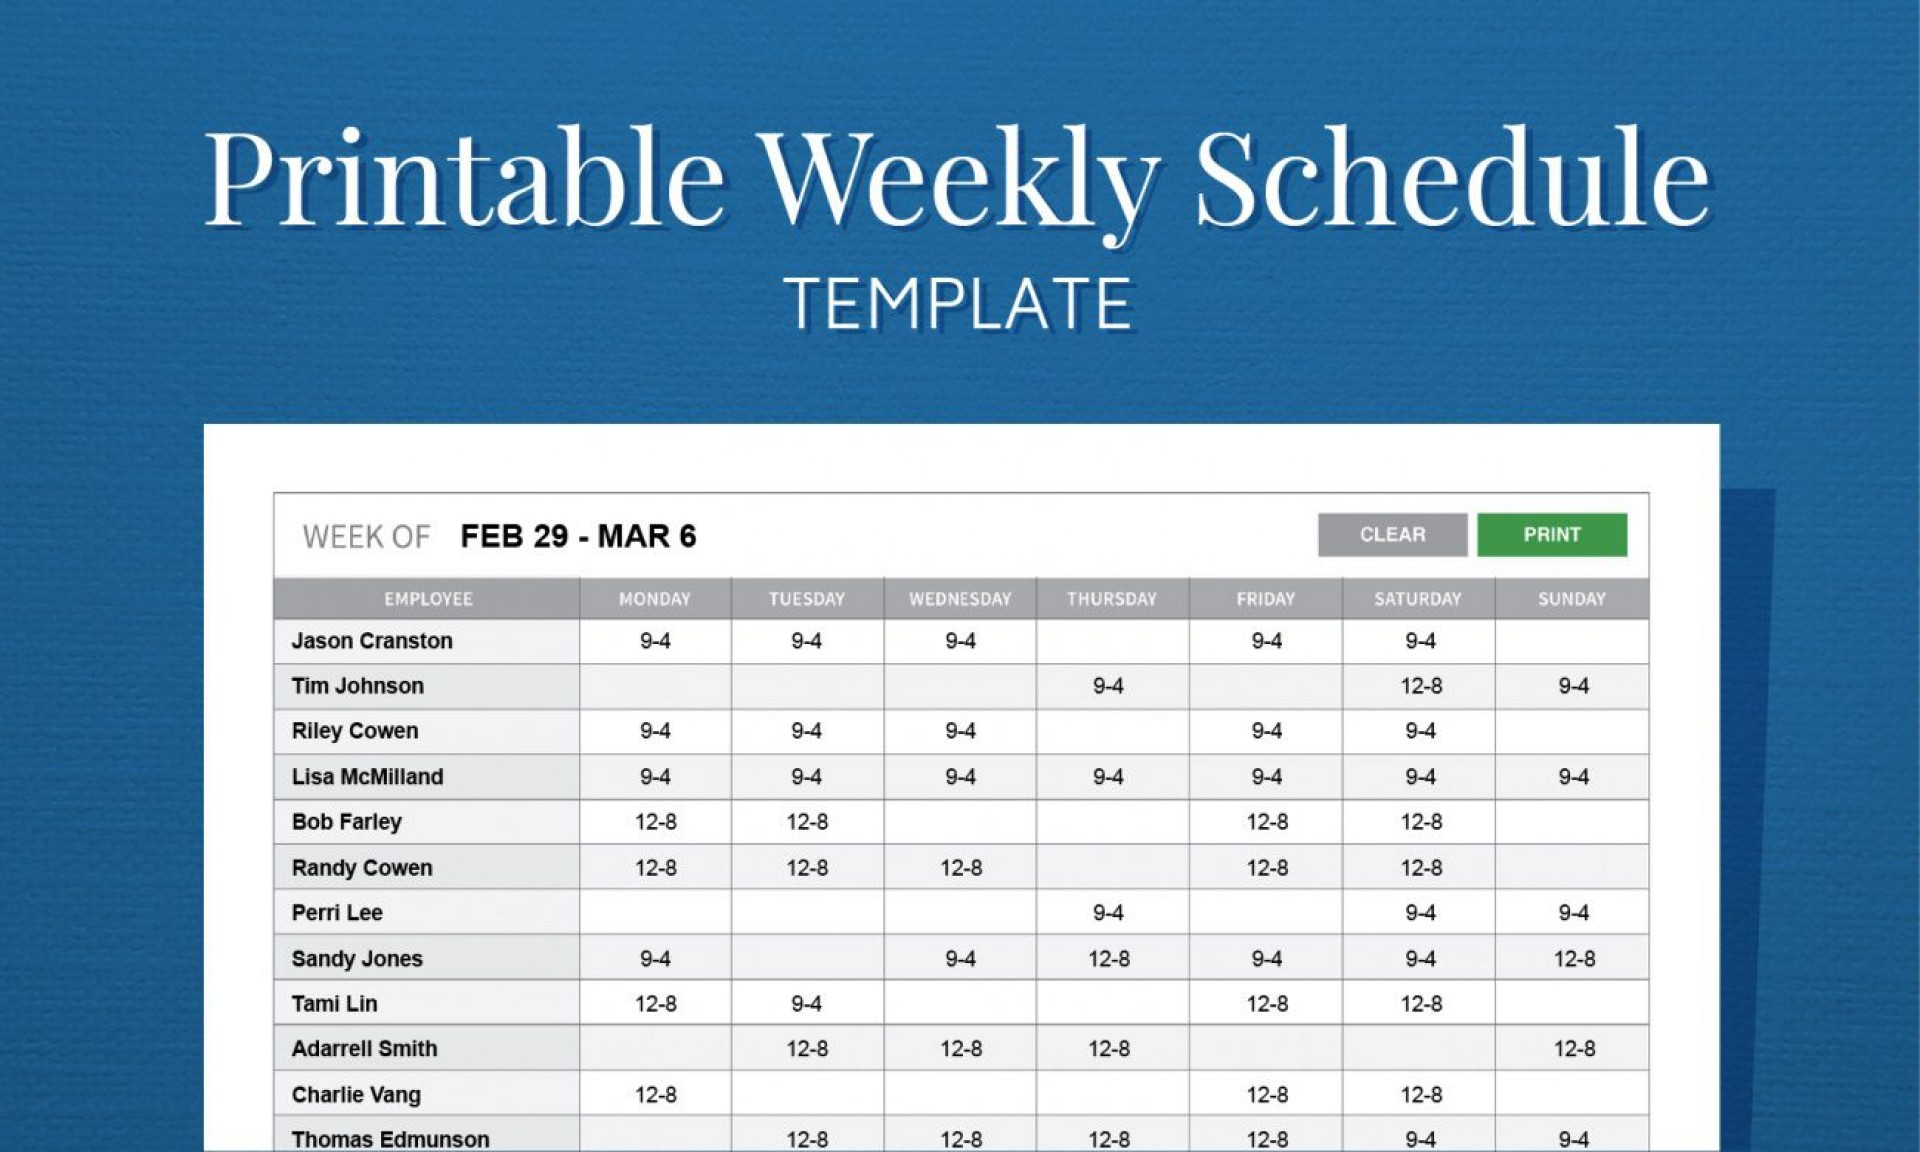 005 Fantastic Free Employee Scheduling Template Concept  Templates Weekly Work Schedule Printable Training Plan Excel1920